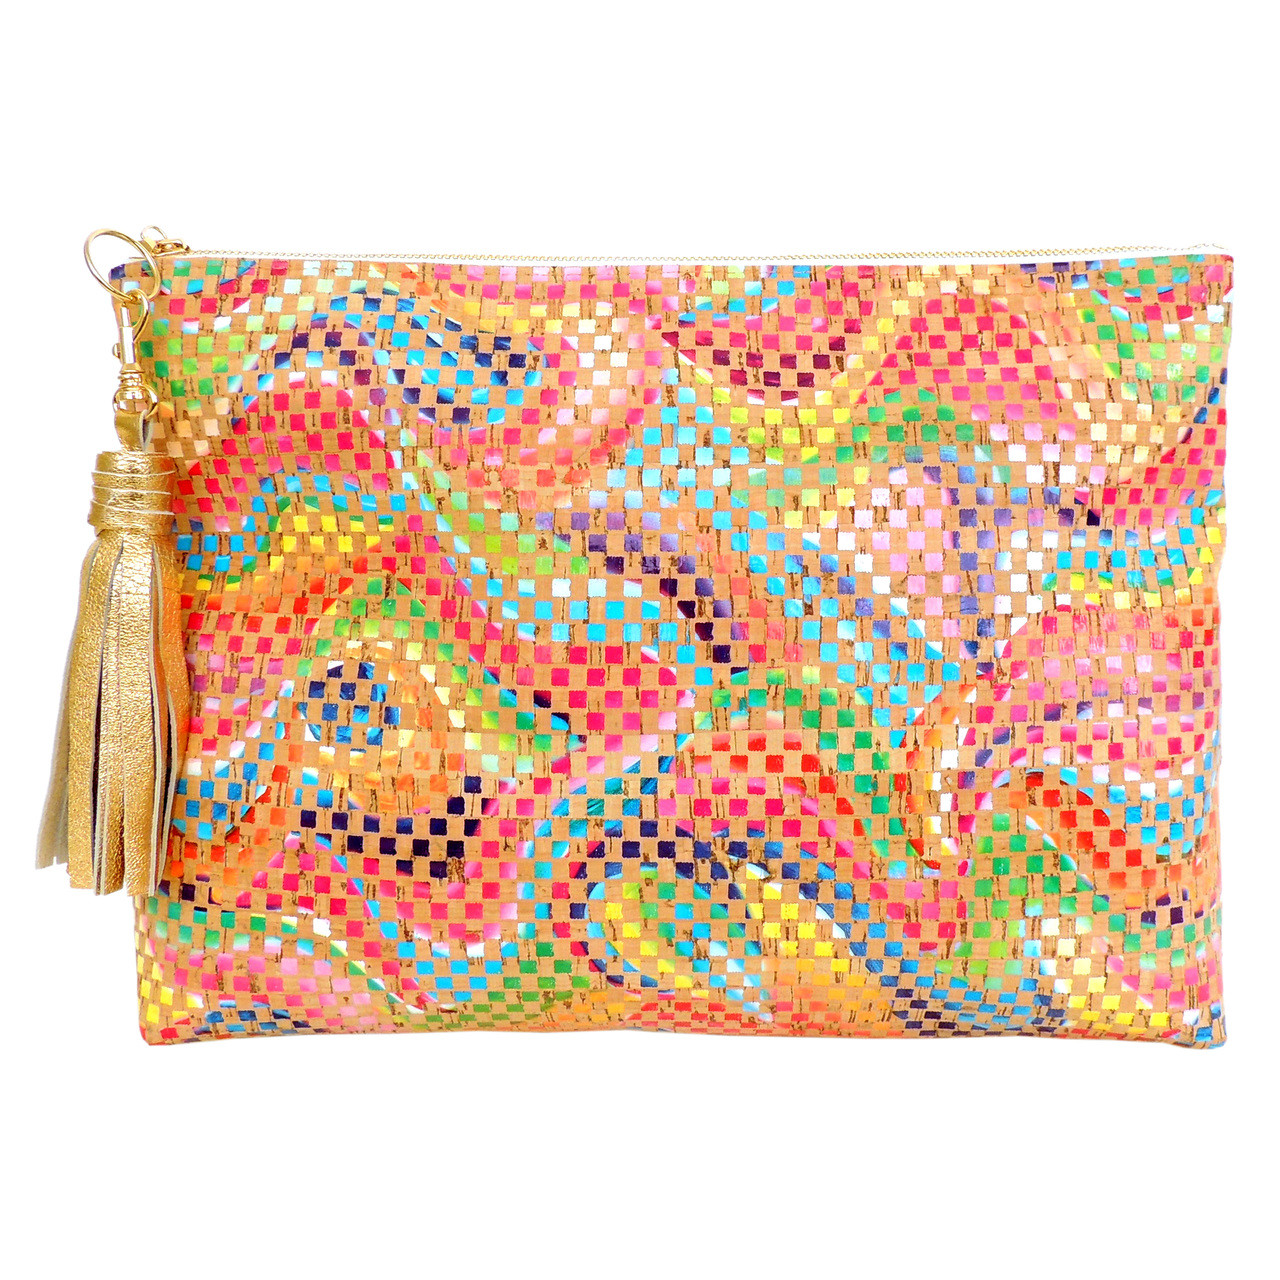 Folio Clutch in Mosaic Cork, with tassel (sold separately)